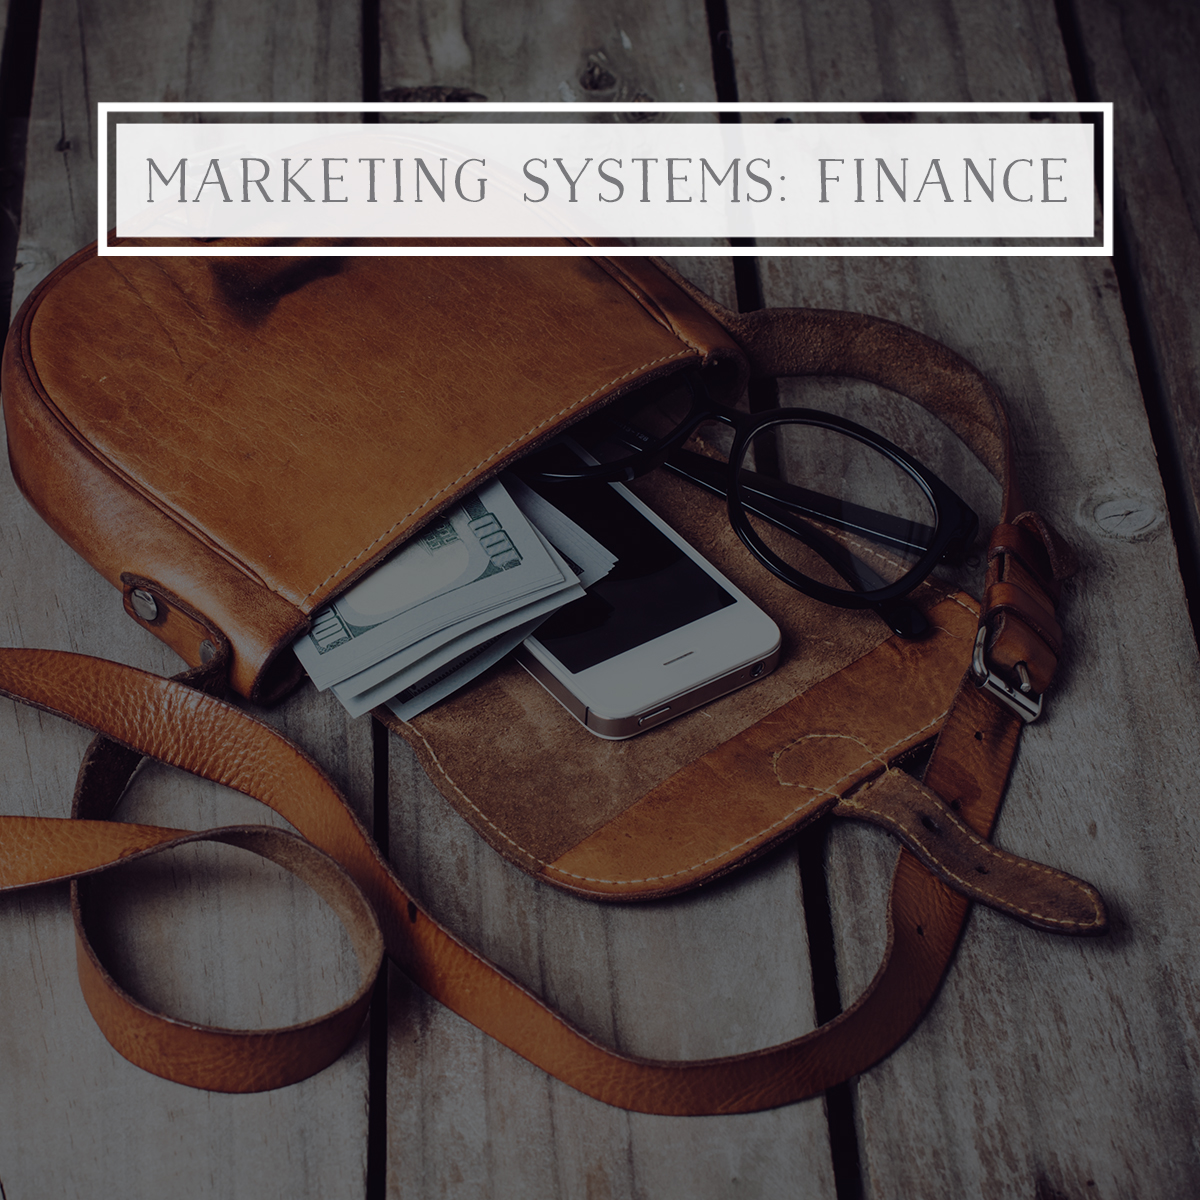 Marketing Systems: Finance